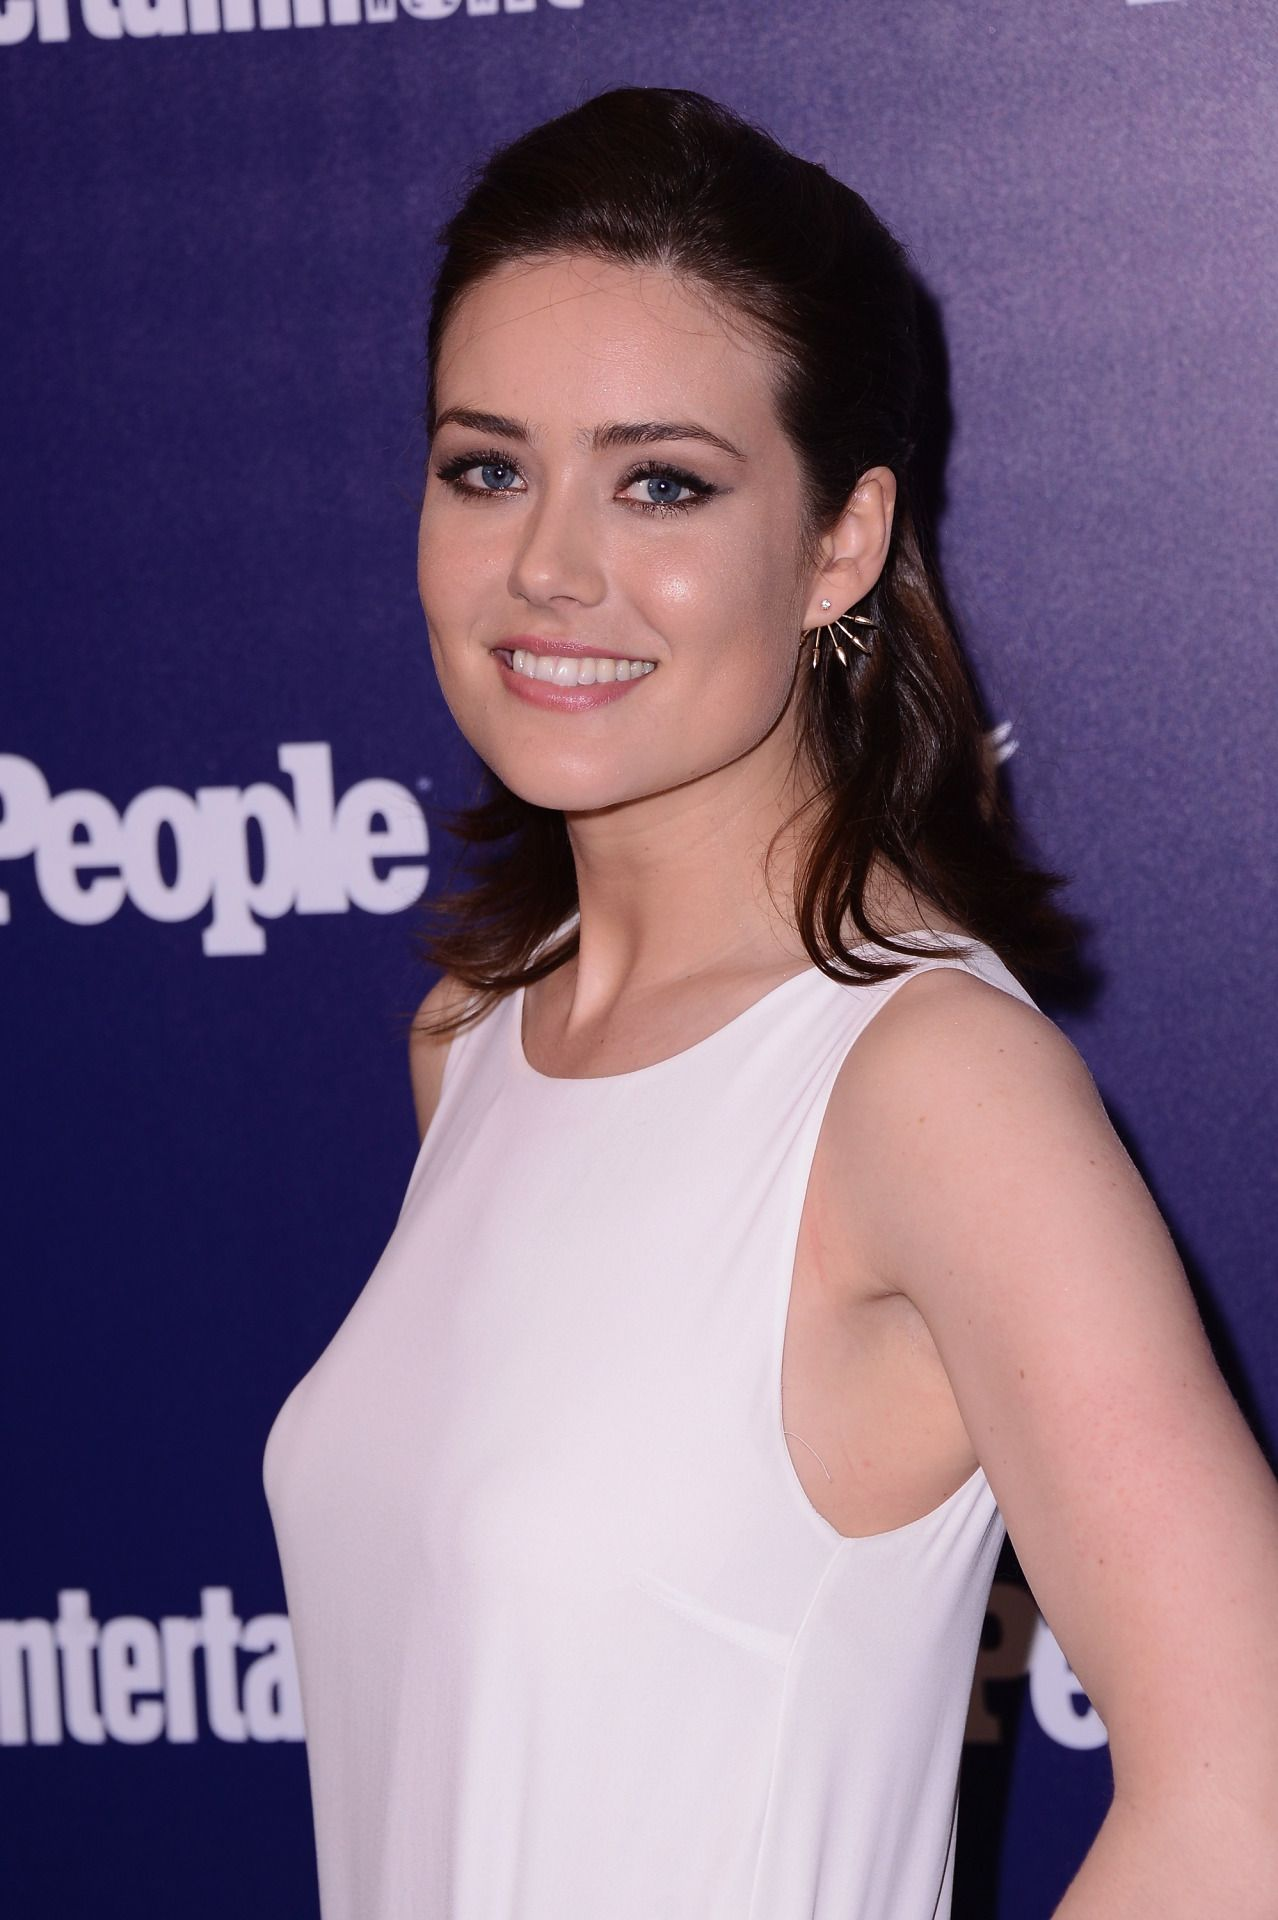 Fotos Megan Boone nude photos 2019